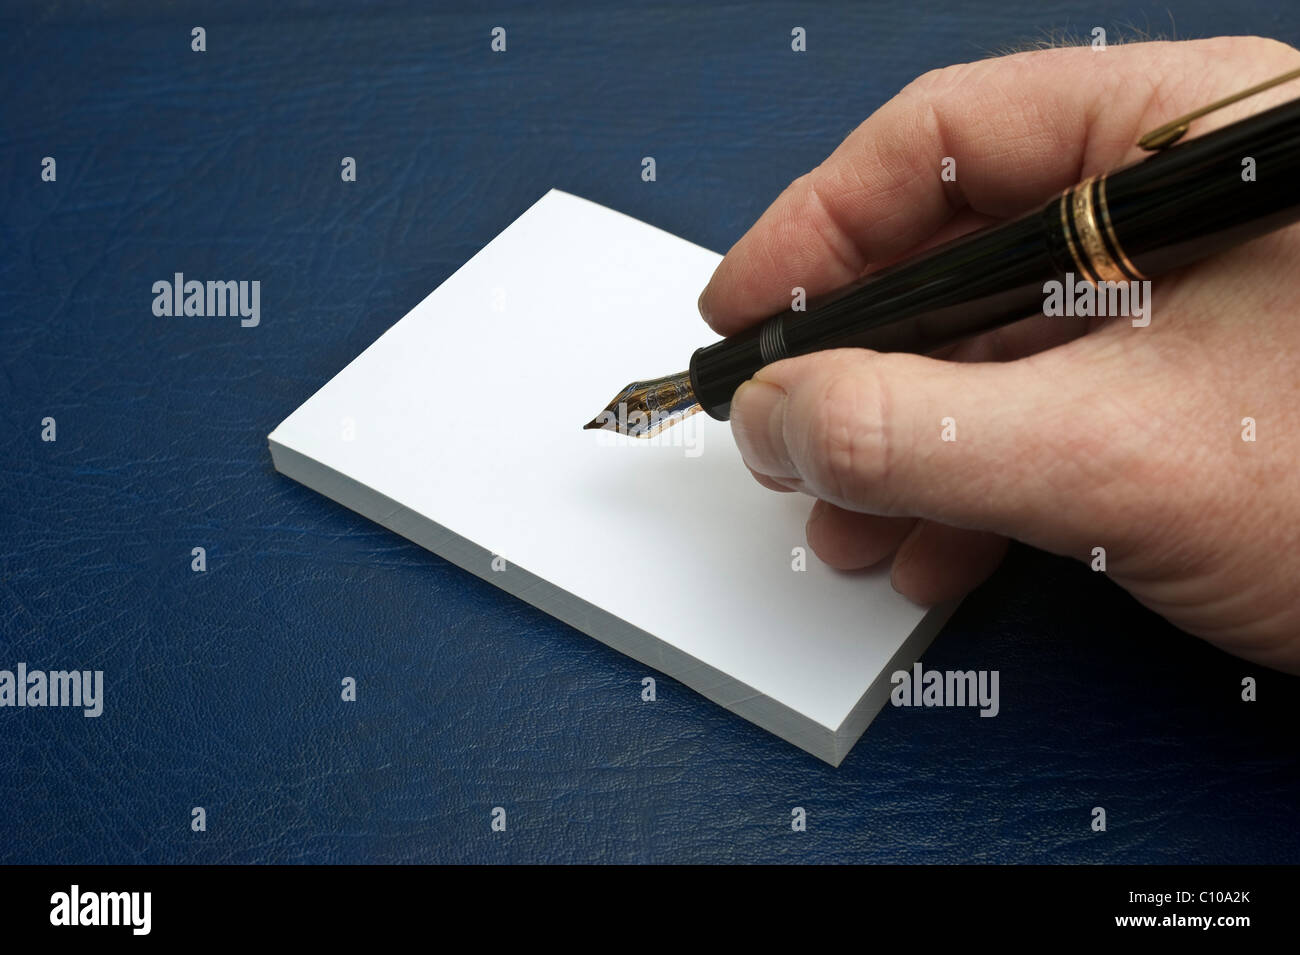 A male hand holding a Mont Blanc Meisterstuck 149 fountain pen about to write on a white writing pad - Stock Image